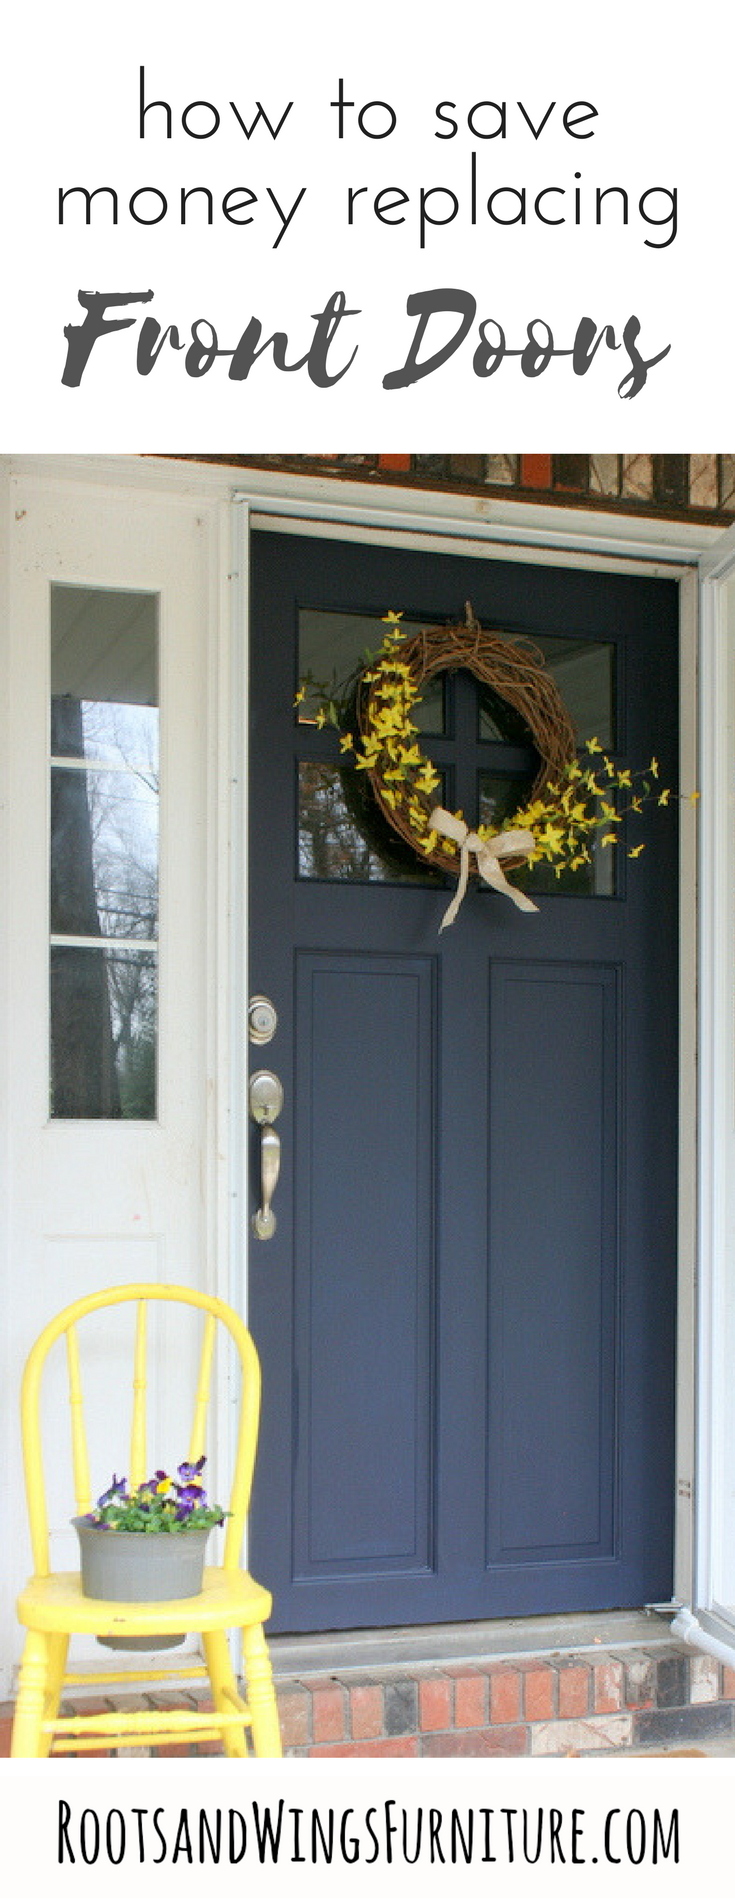 How To Refurbish An Old Front Door With A Fast And Easy Makeover. Use  General Finishes Milk Paint To Transform Your Front Door On A Budget.